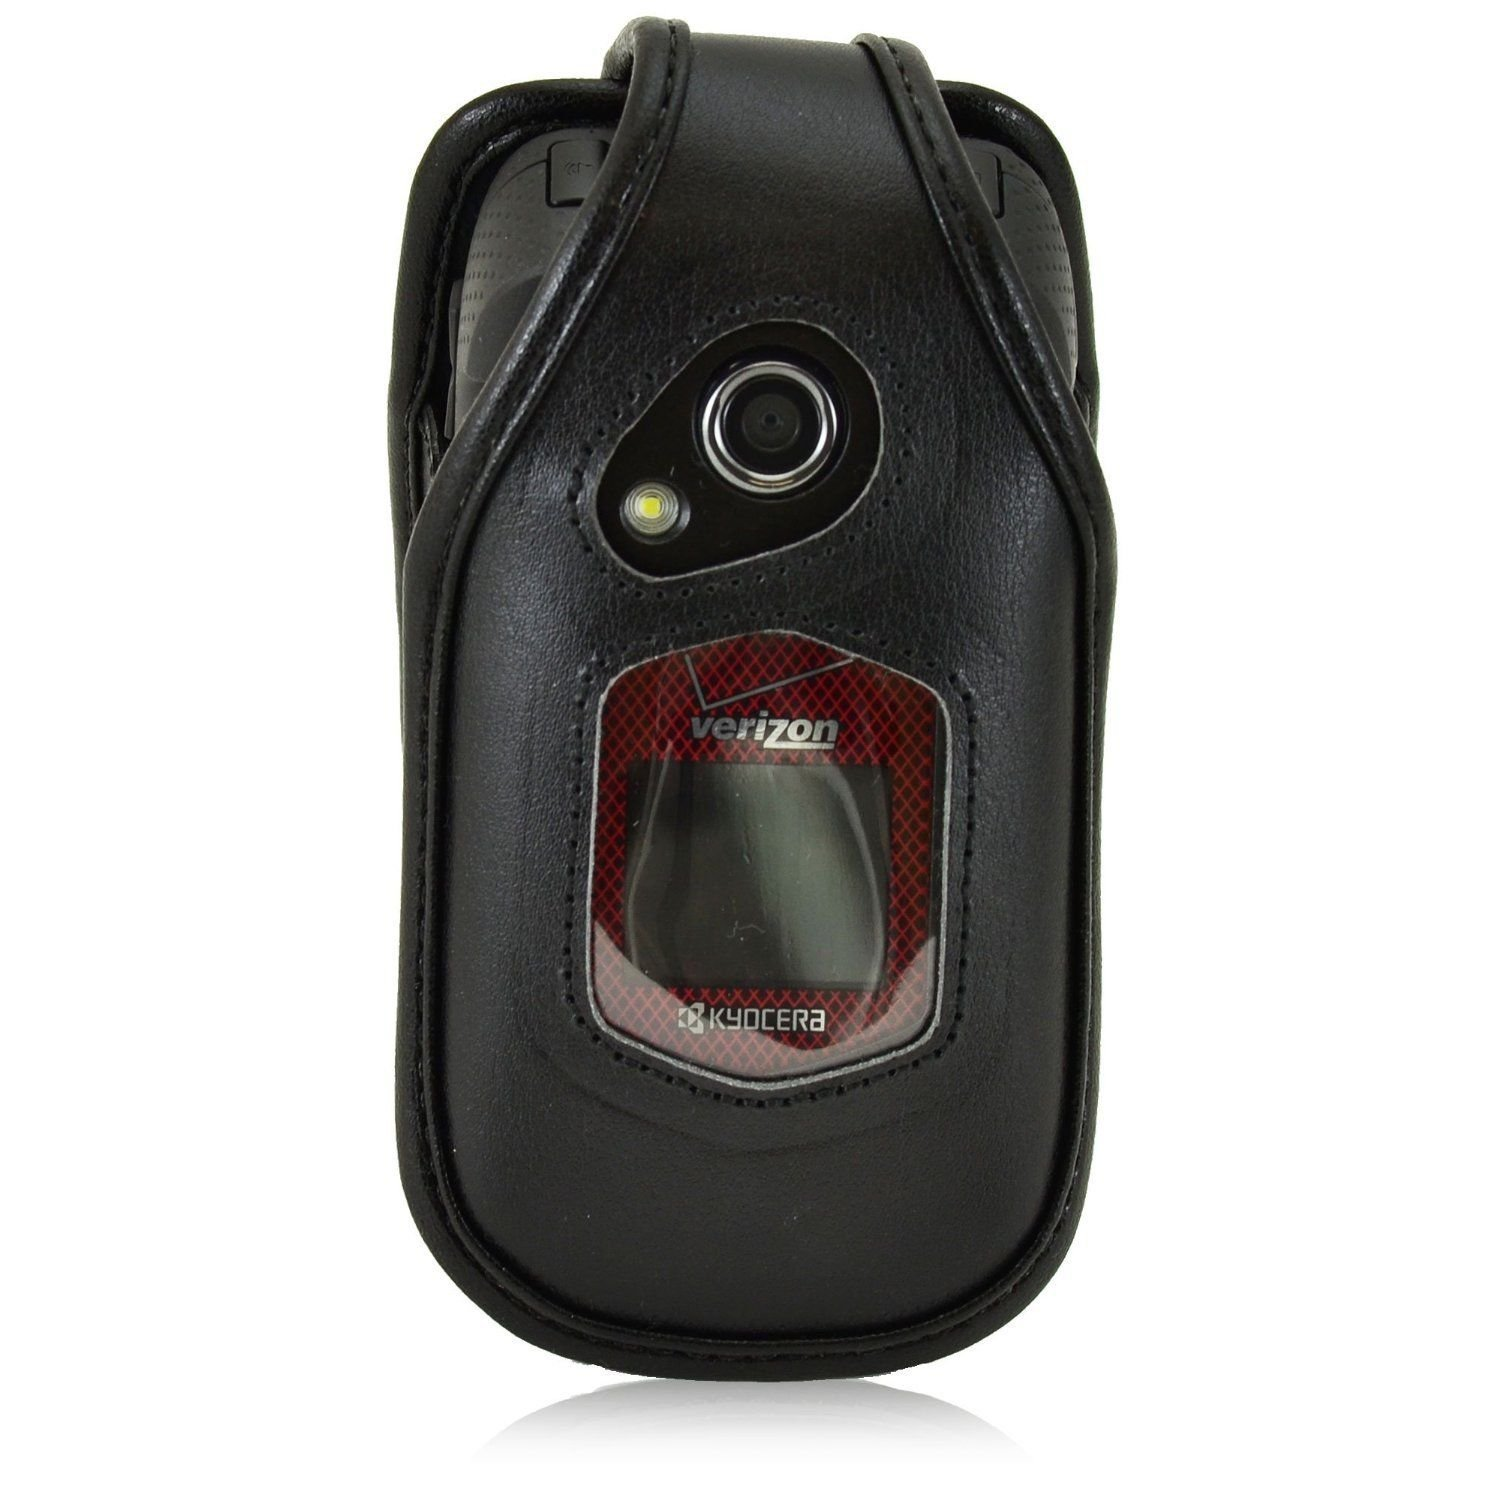 Turtleback Fitted Case for Kyocera DuraXV Flip Phone Black Leather Rotating Remo image 5